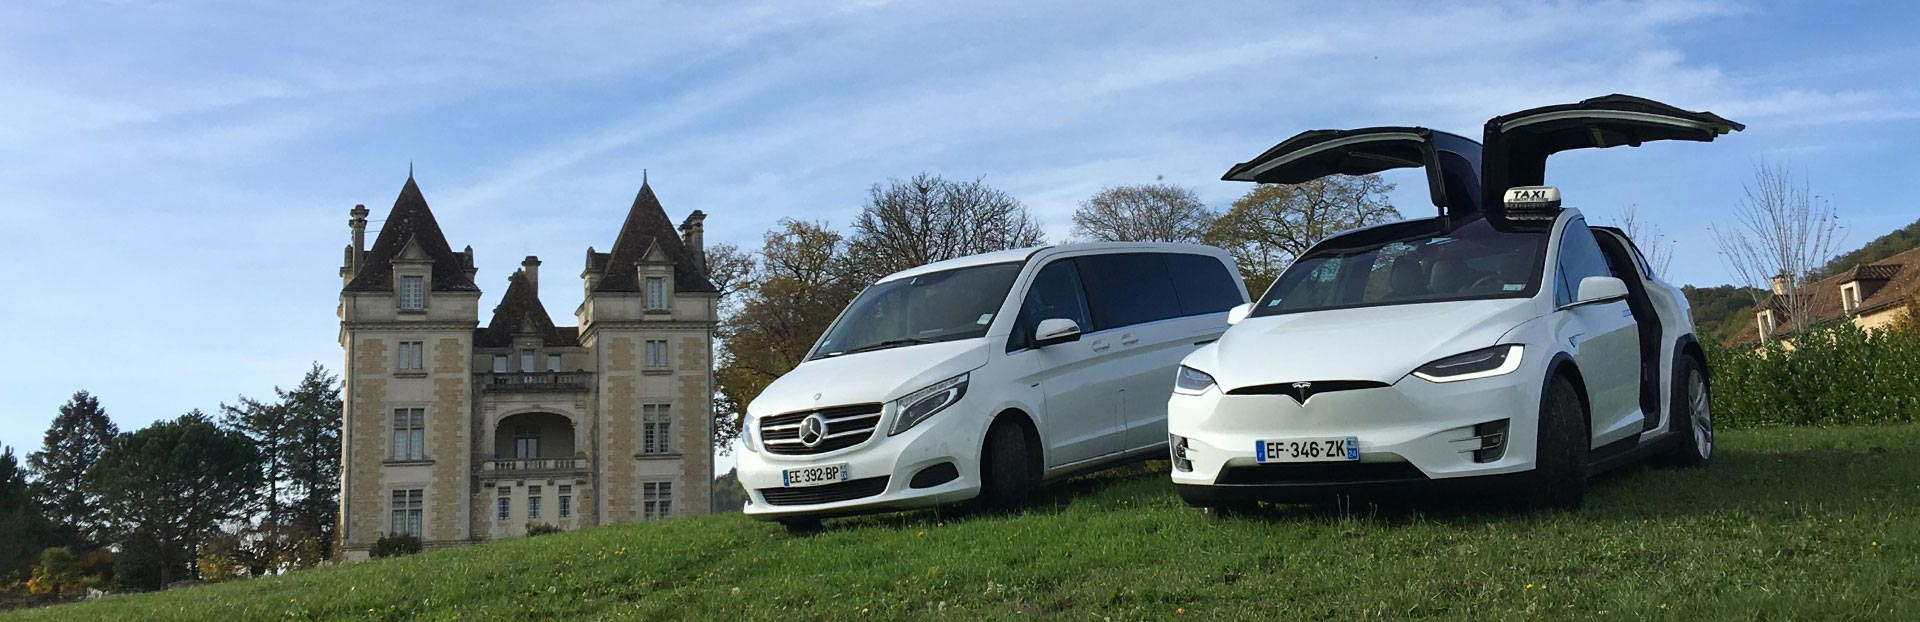 Excursions privées - Taxi Touring